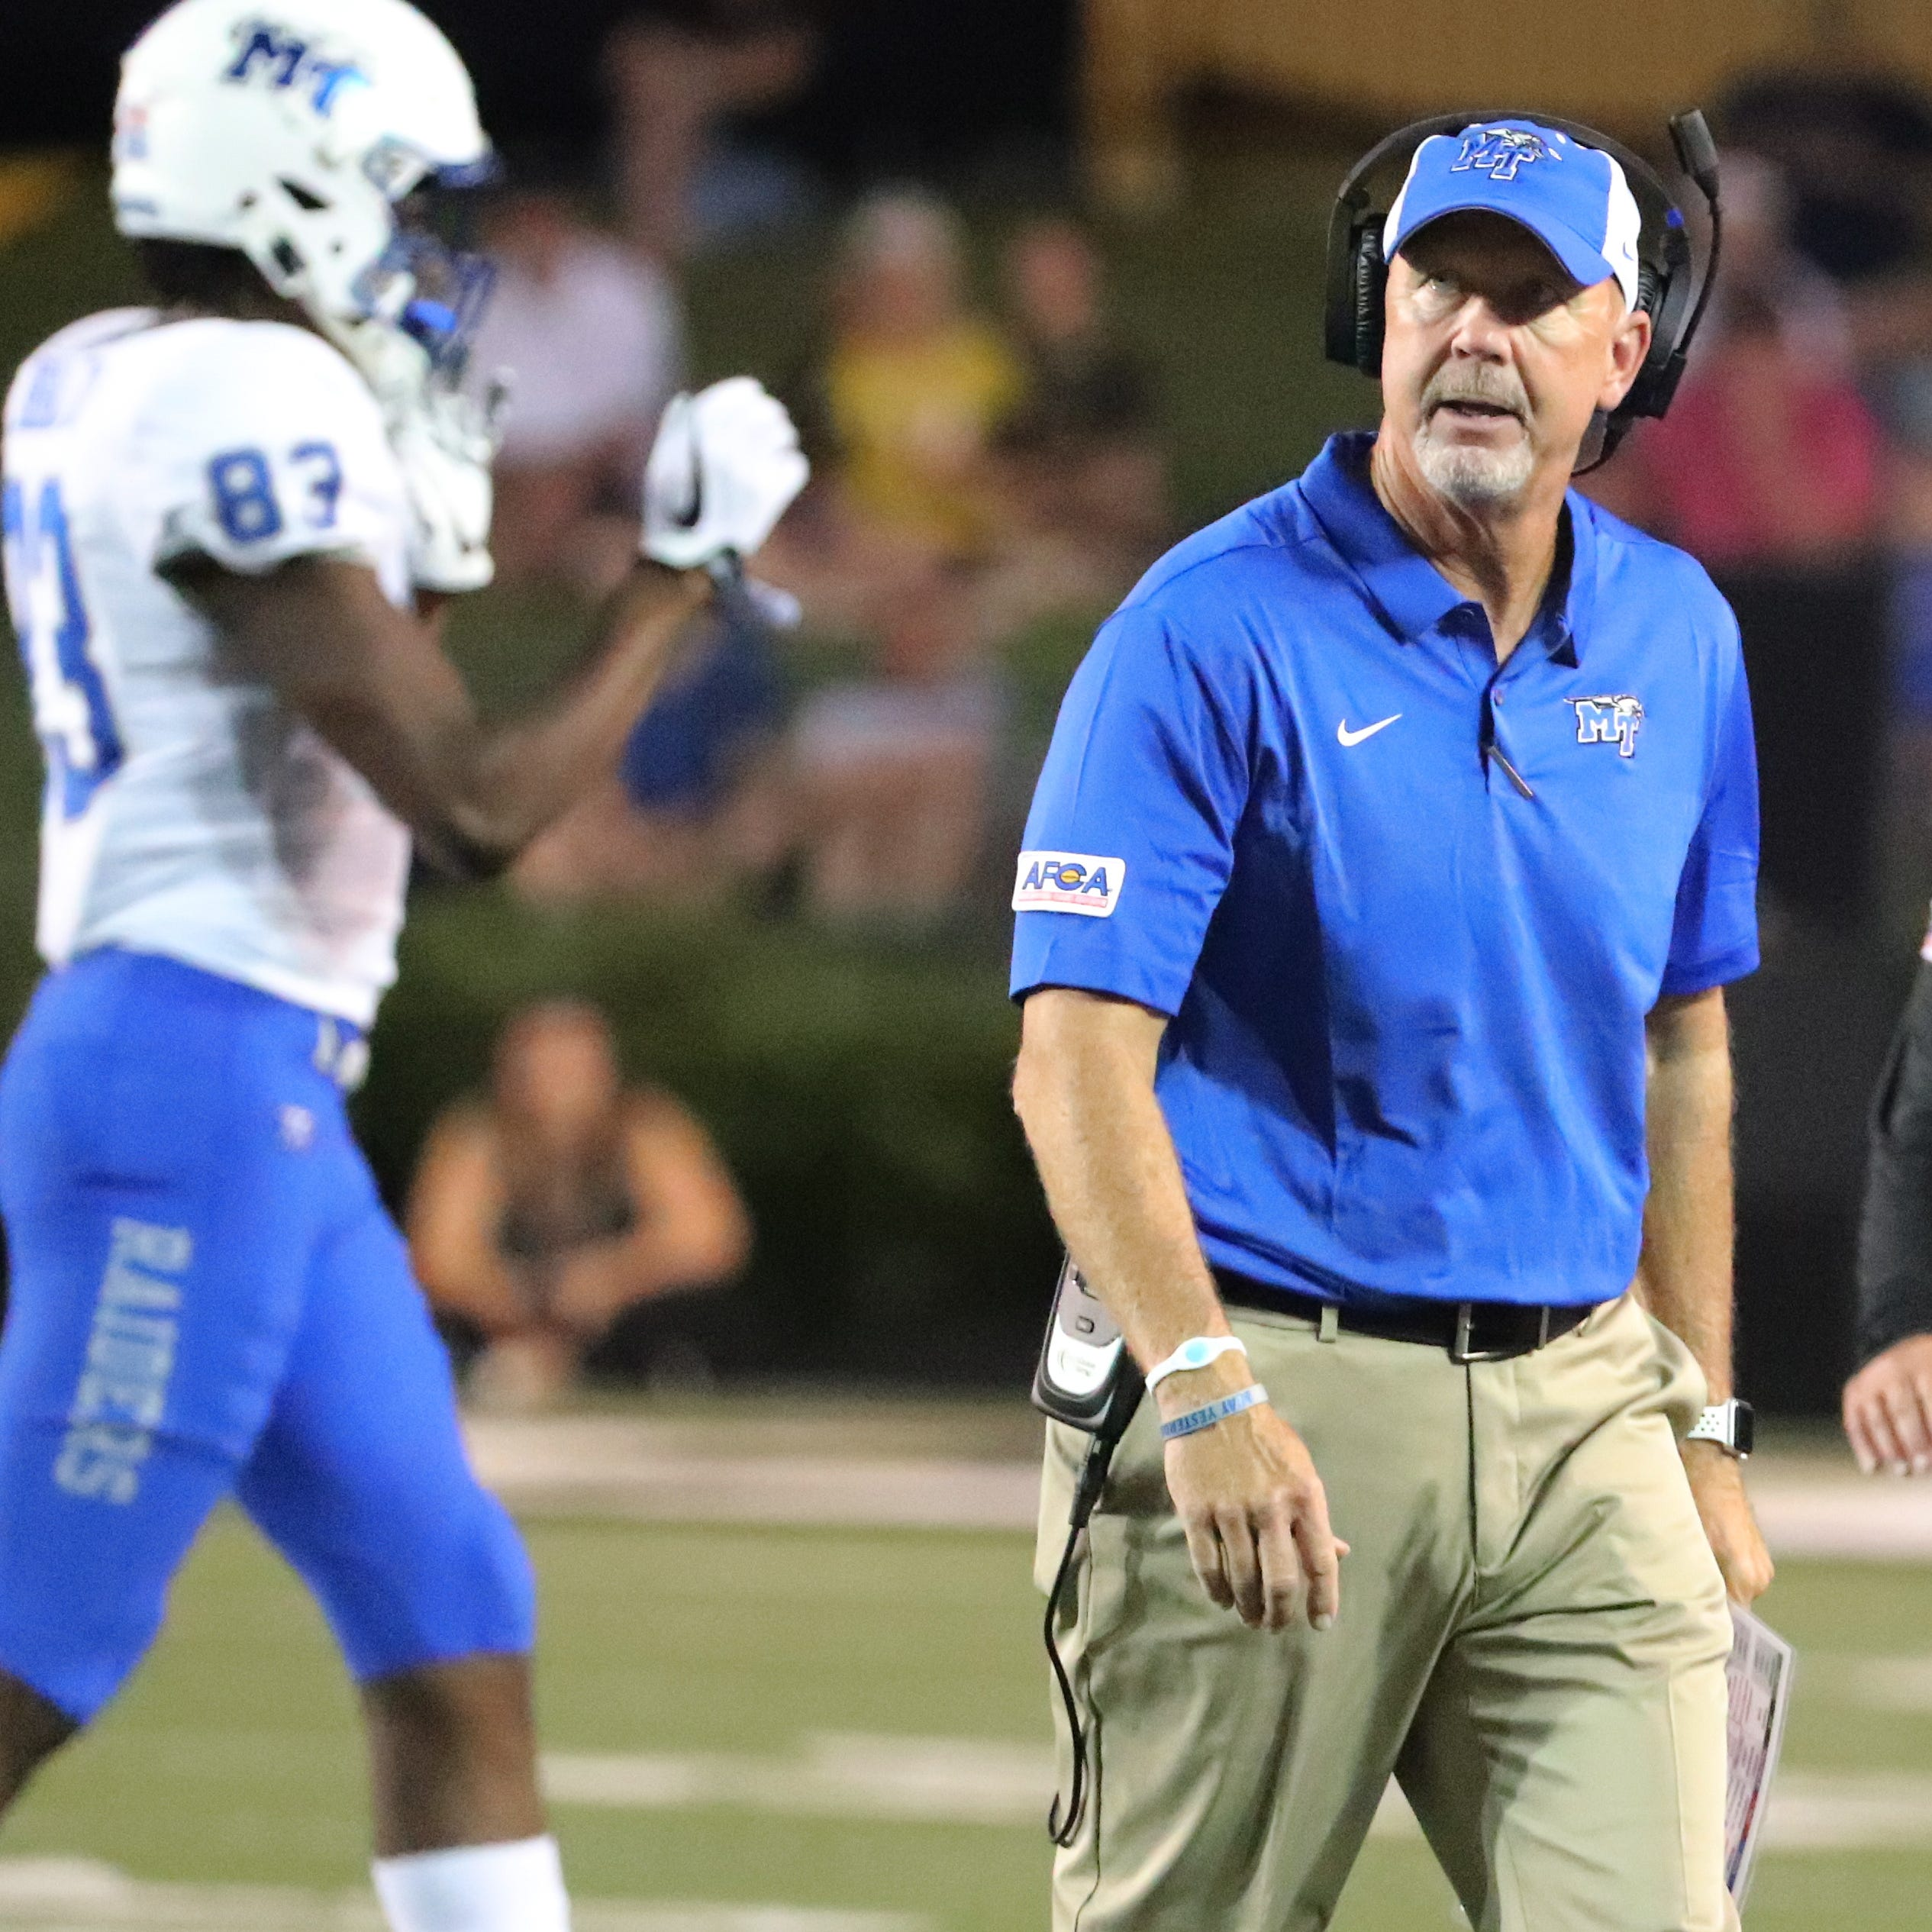 Up next: MTSU hosts UT Martin in home opener after Vanderbilt defeat